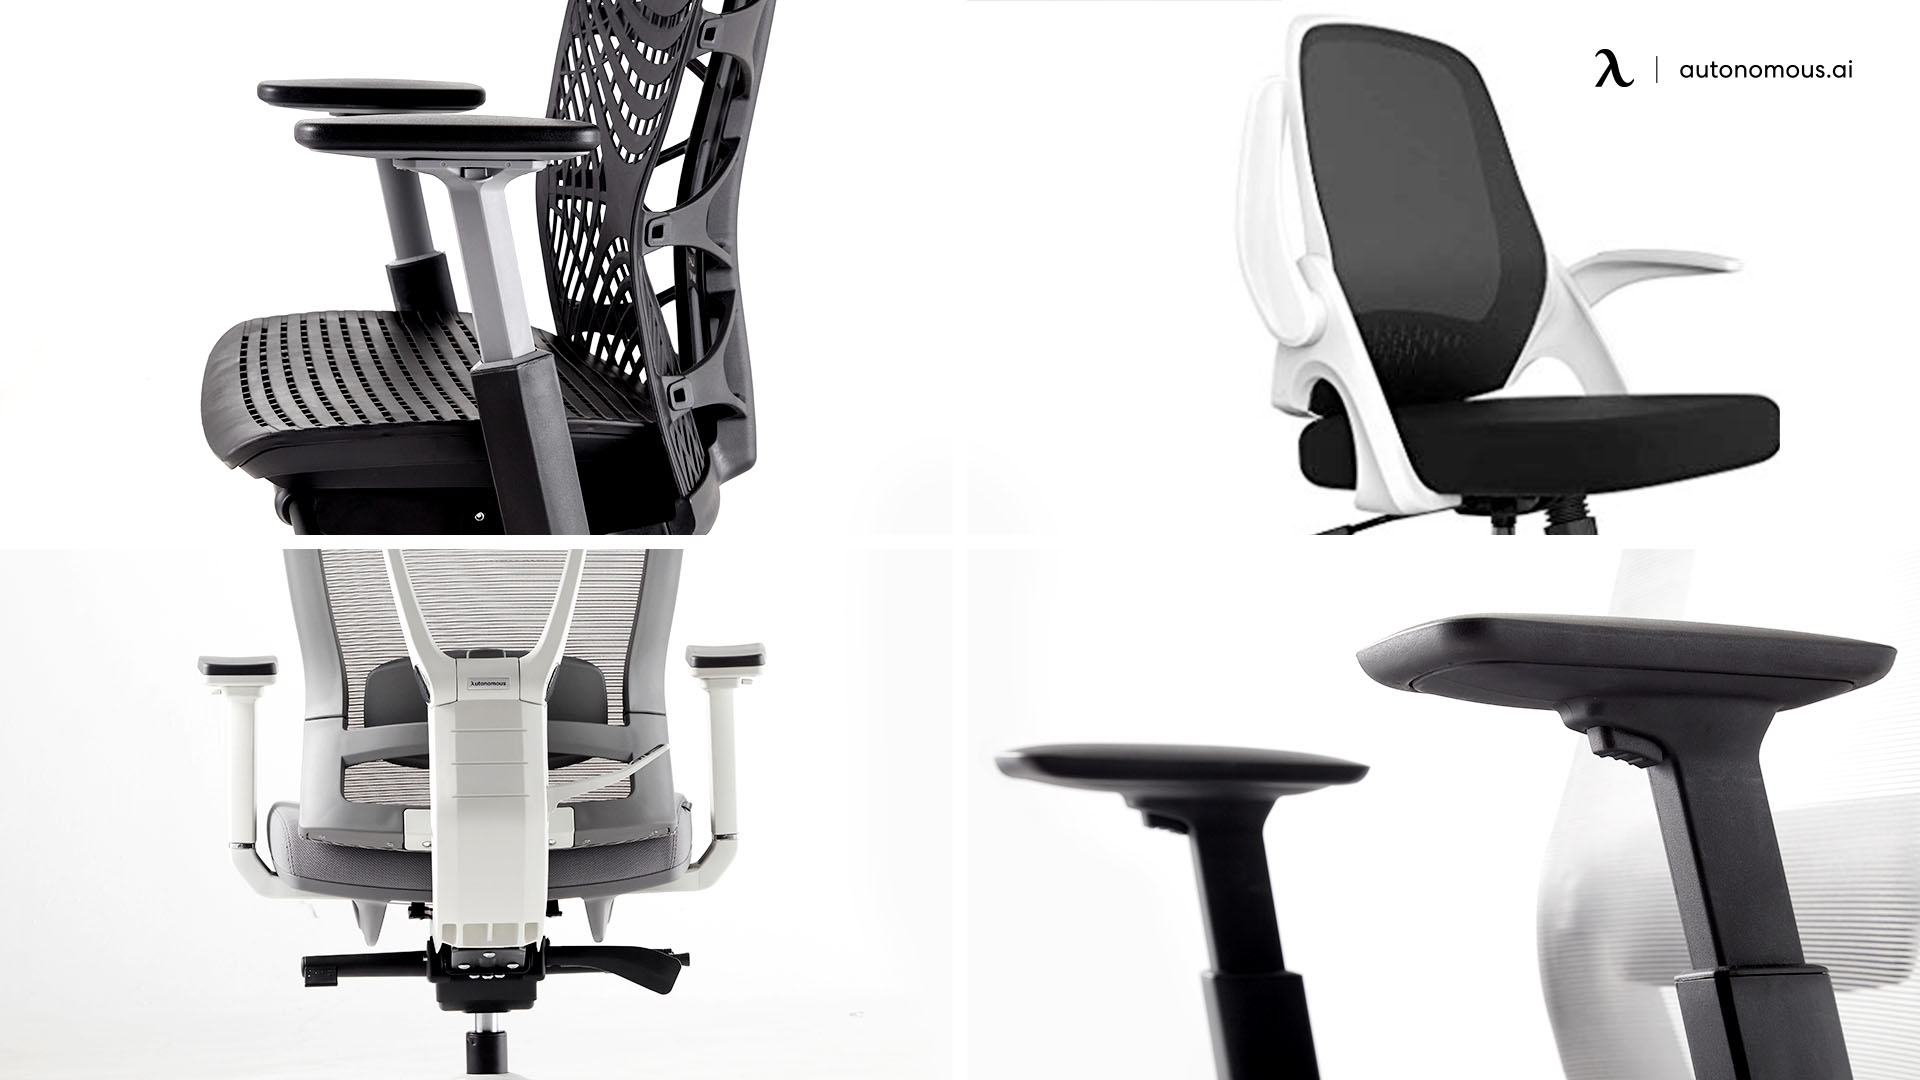 Ergonomic Chair Adjustable Arms: Types of Arm Adjustments